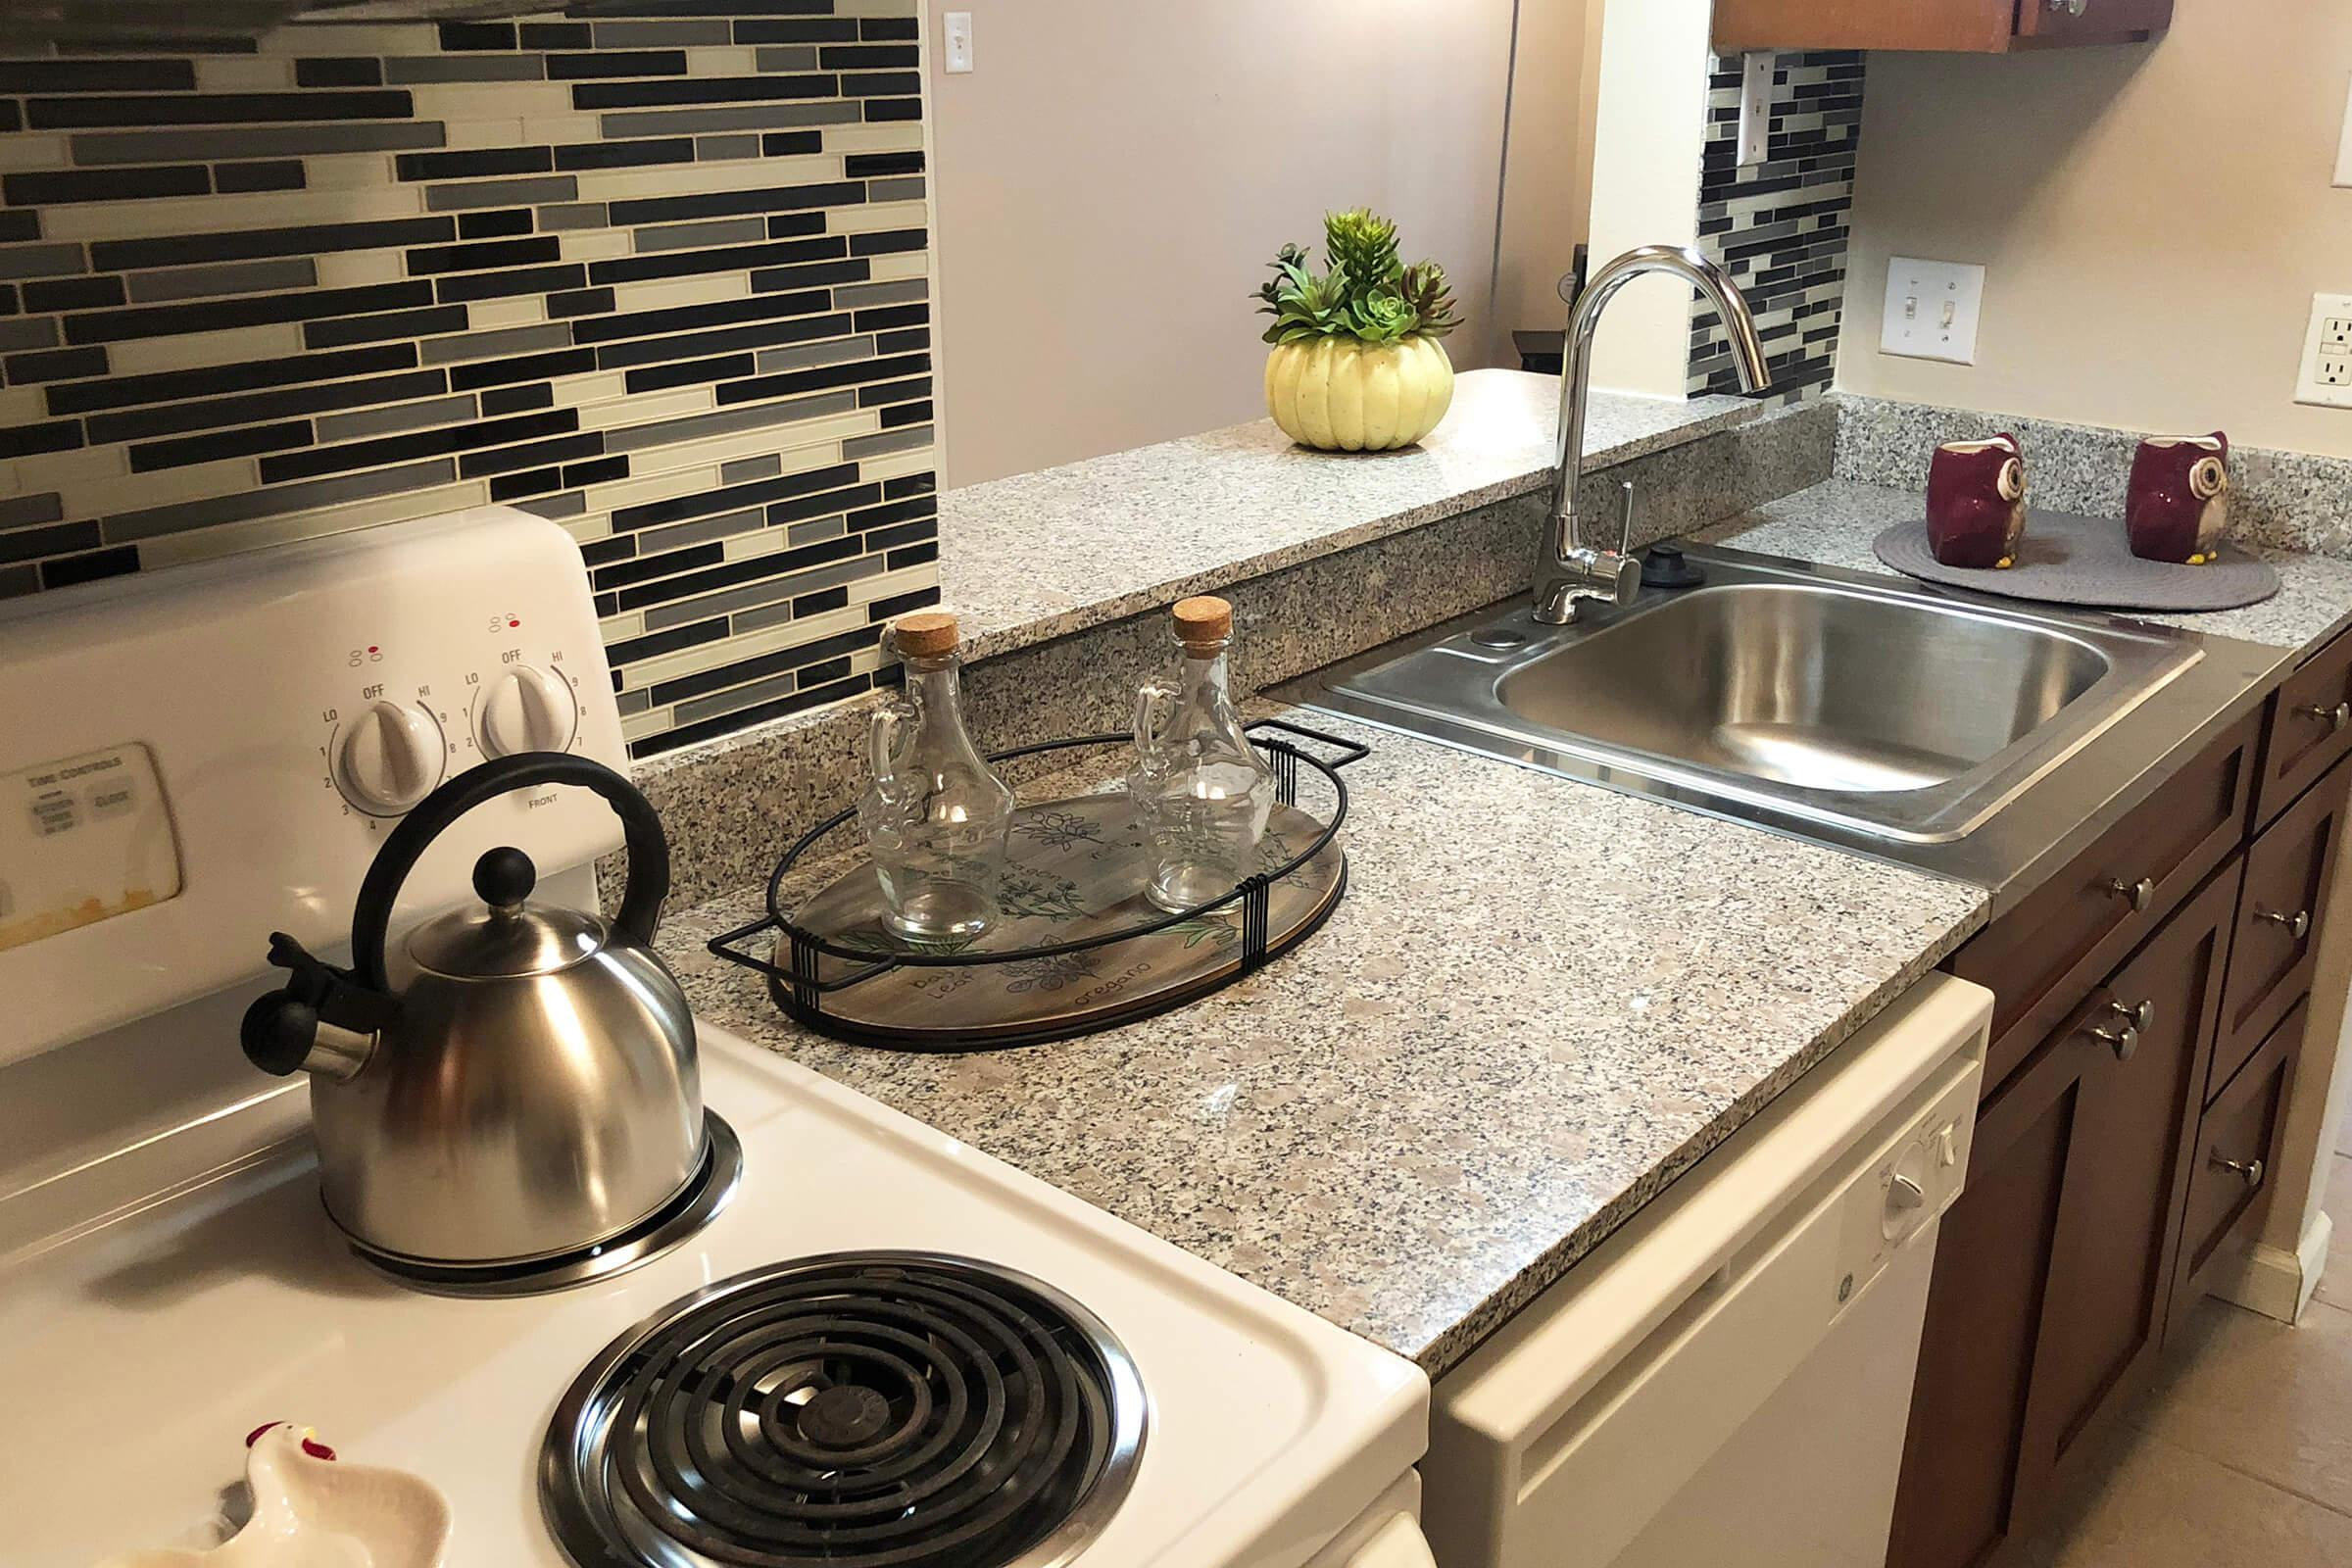 a stove top oven sitting inside of a kitchen counter